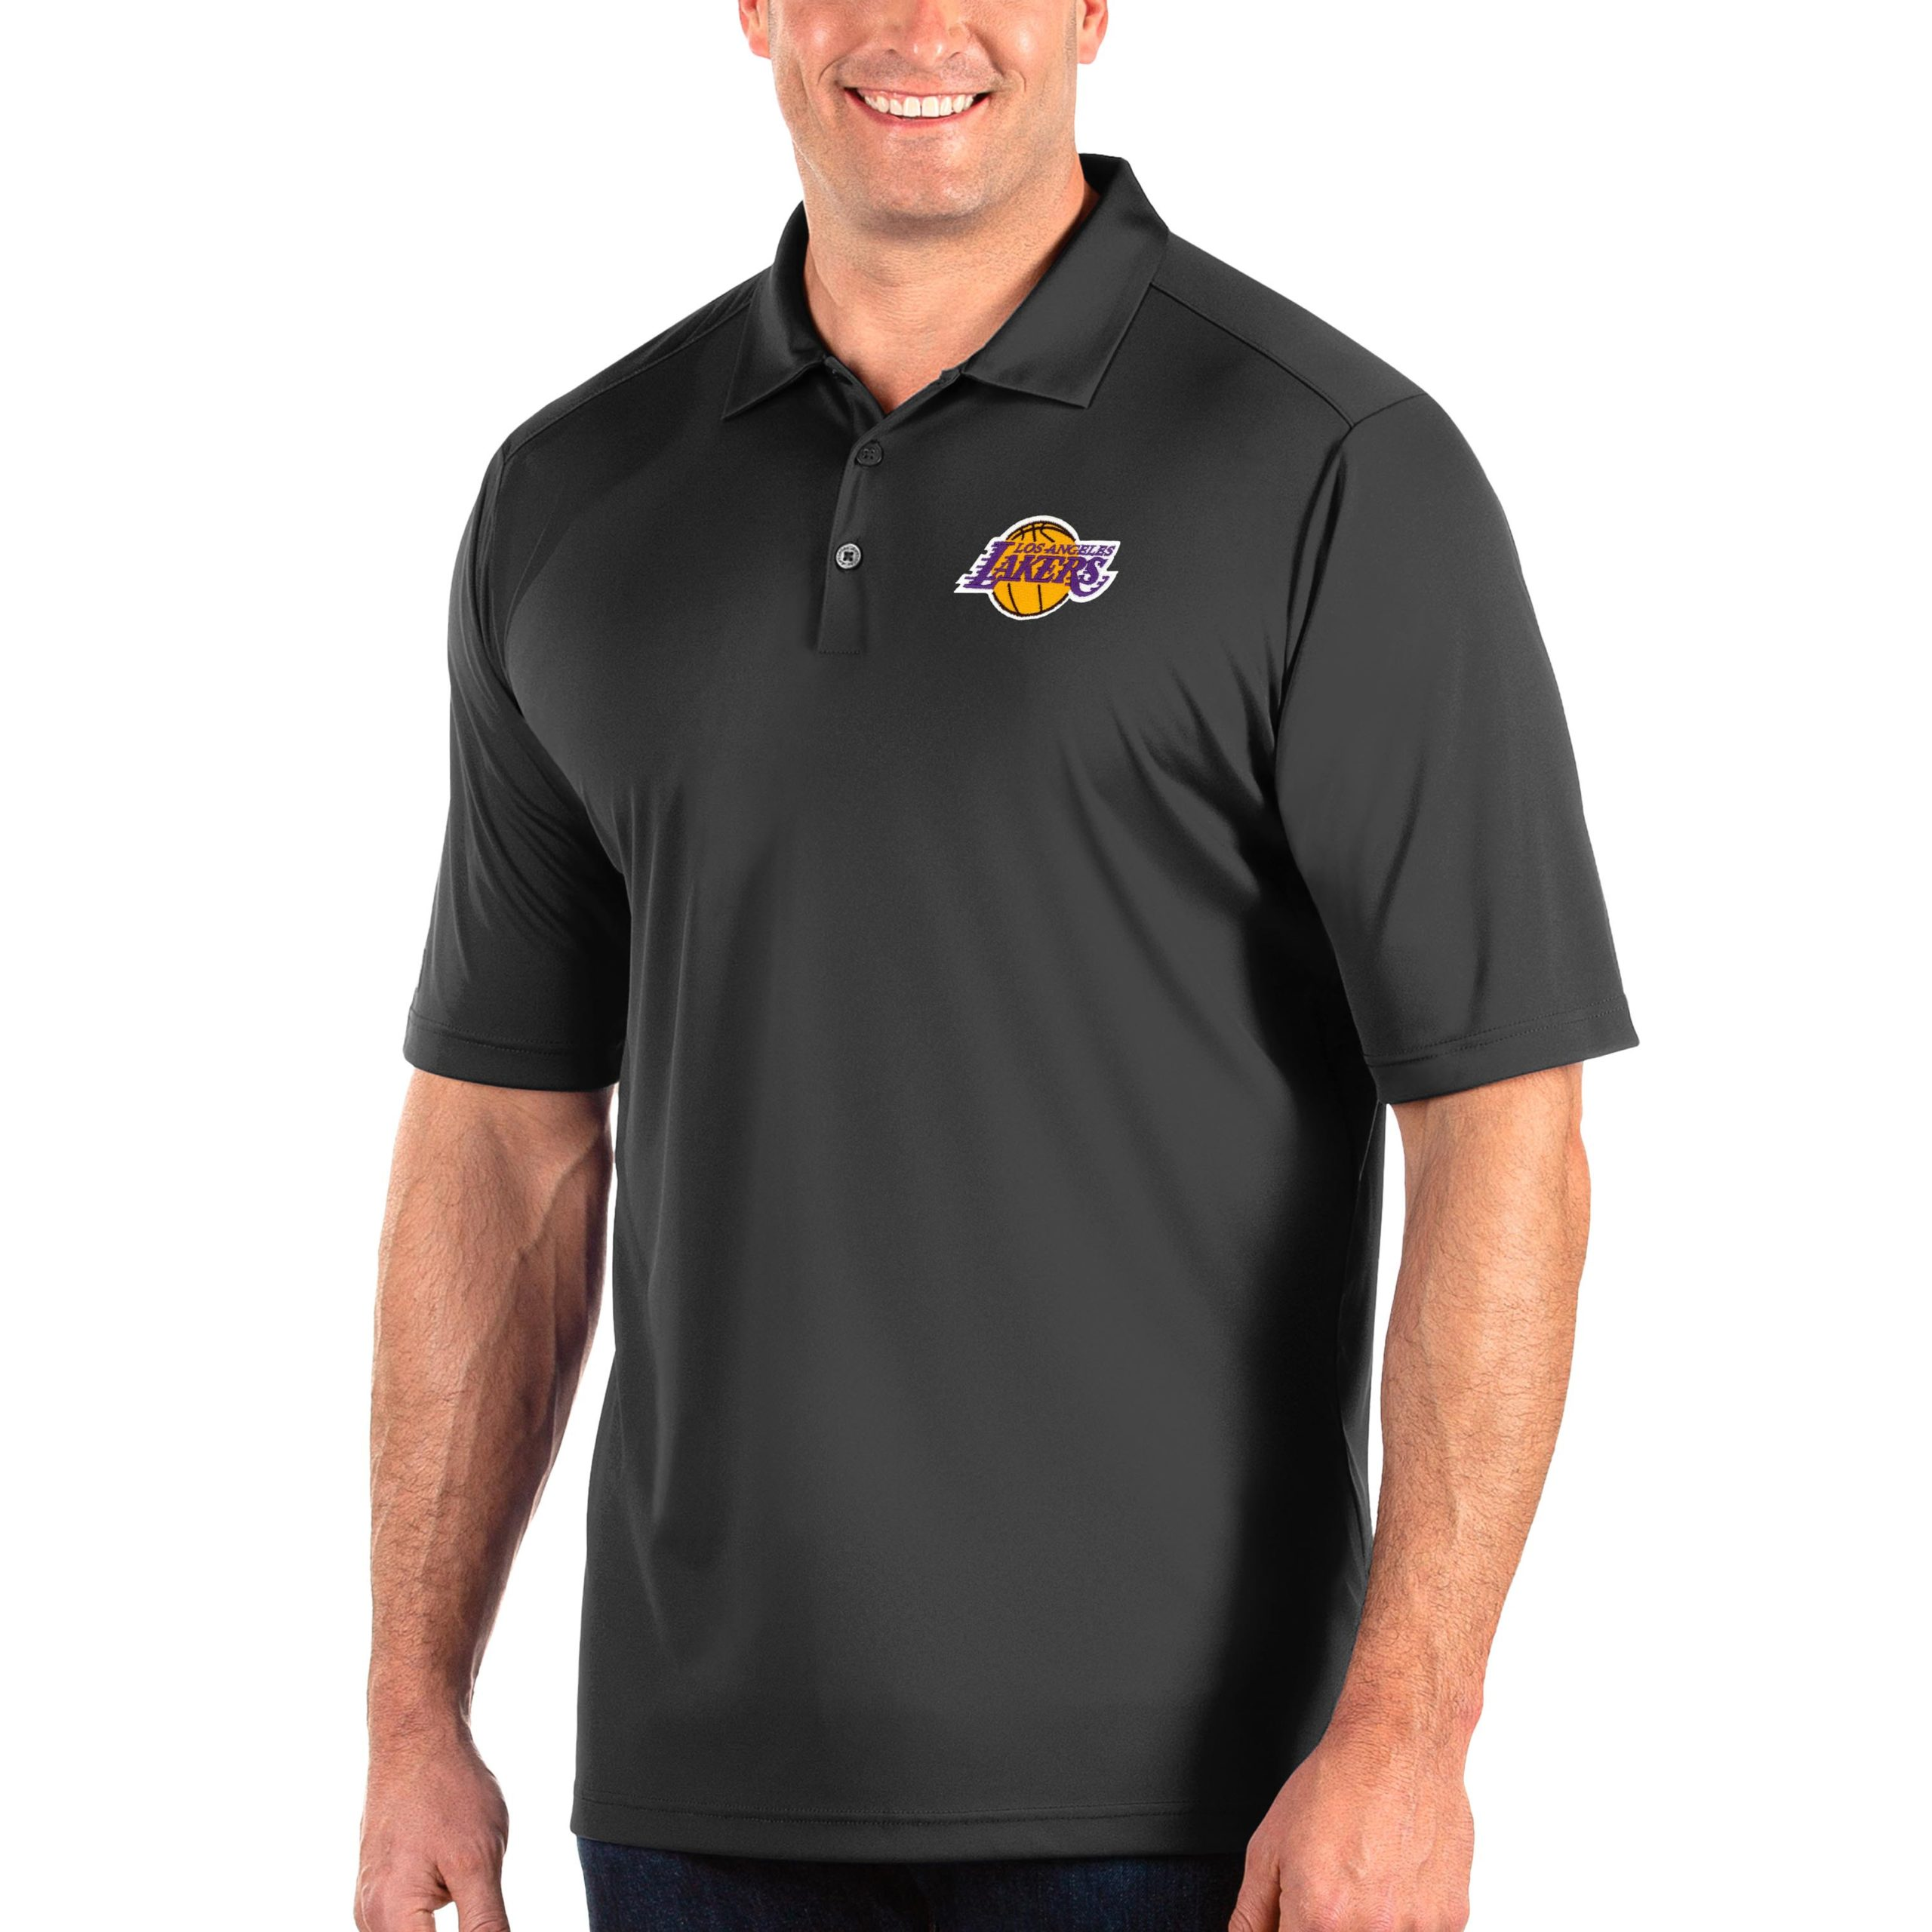 Los Angeles Lakers Antigua Big & Tall Tribute Polo - Charcoal